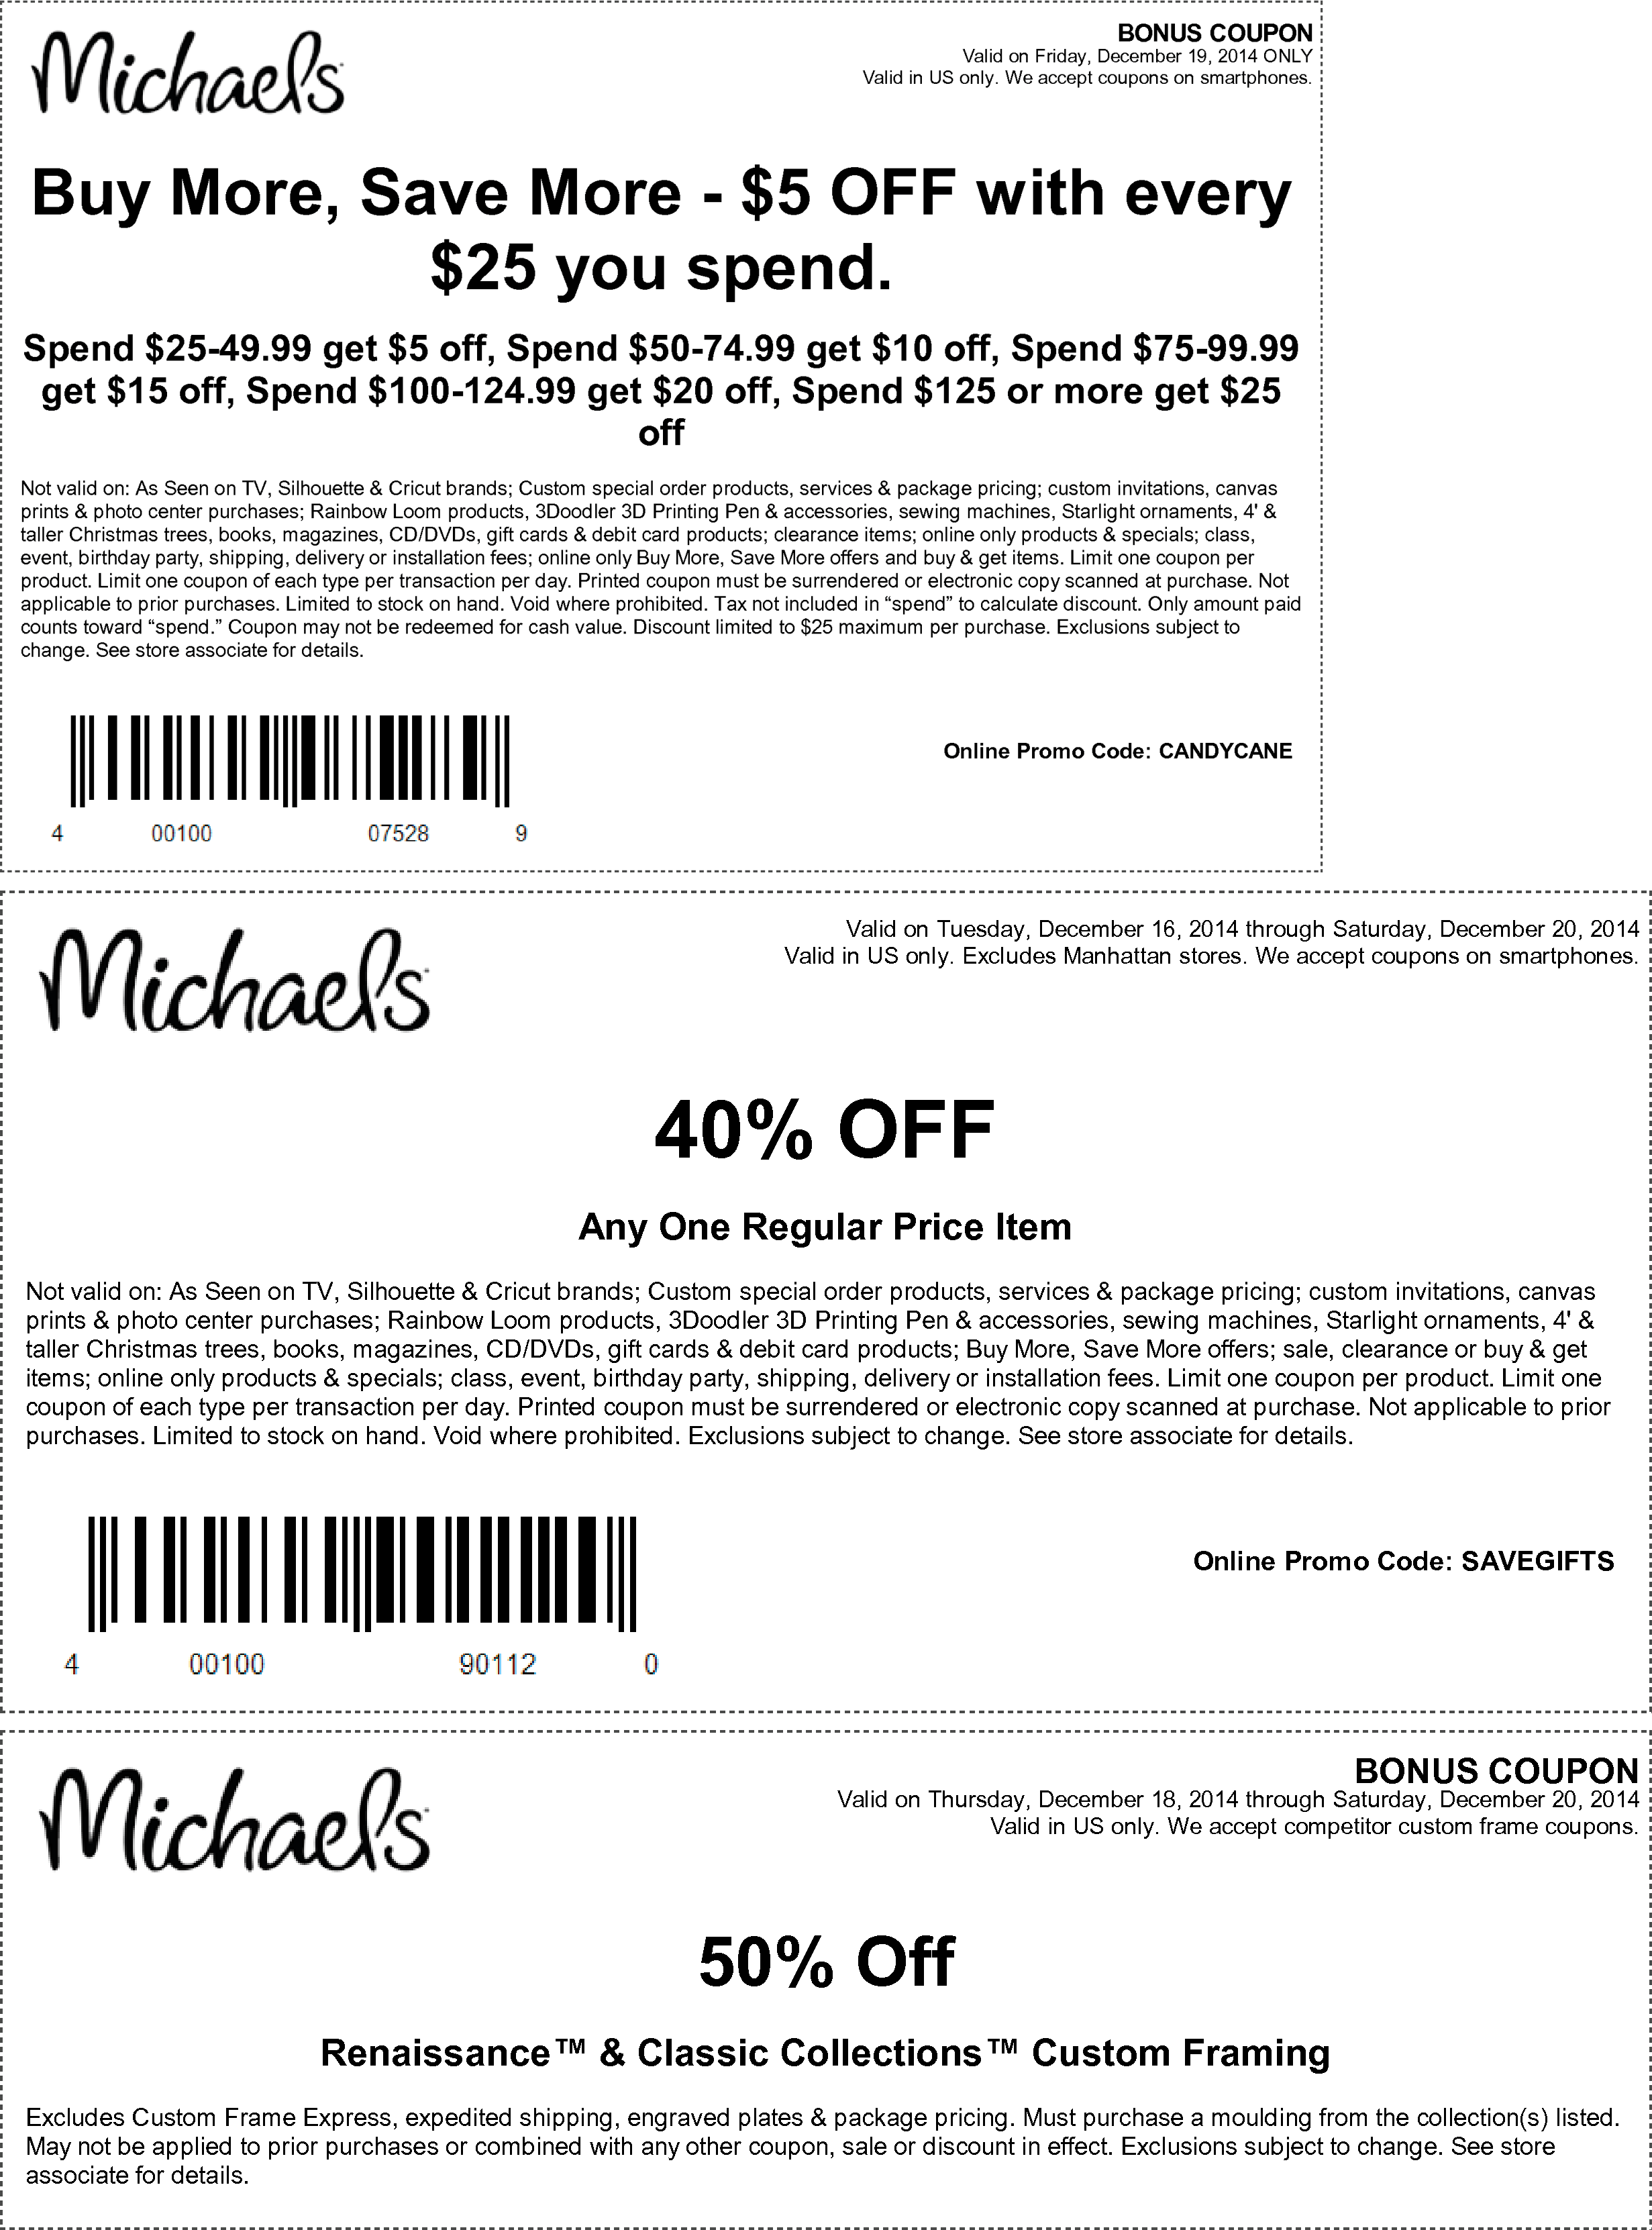 Michaels Coupon March 2017 $5 off every $25 today & more at Michaels, or online via promo code CANDYCANE